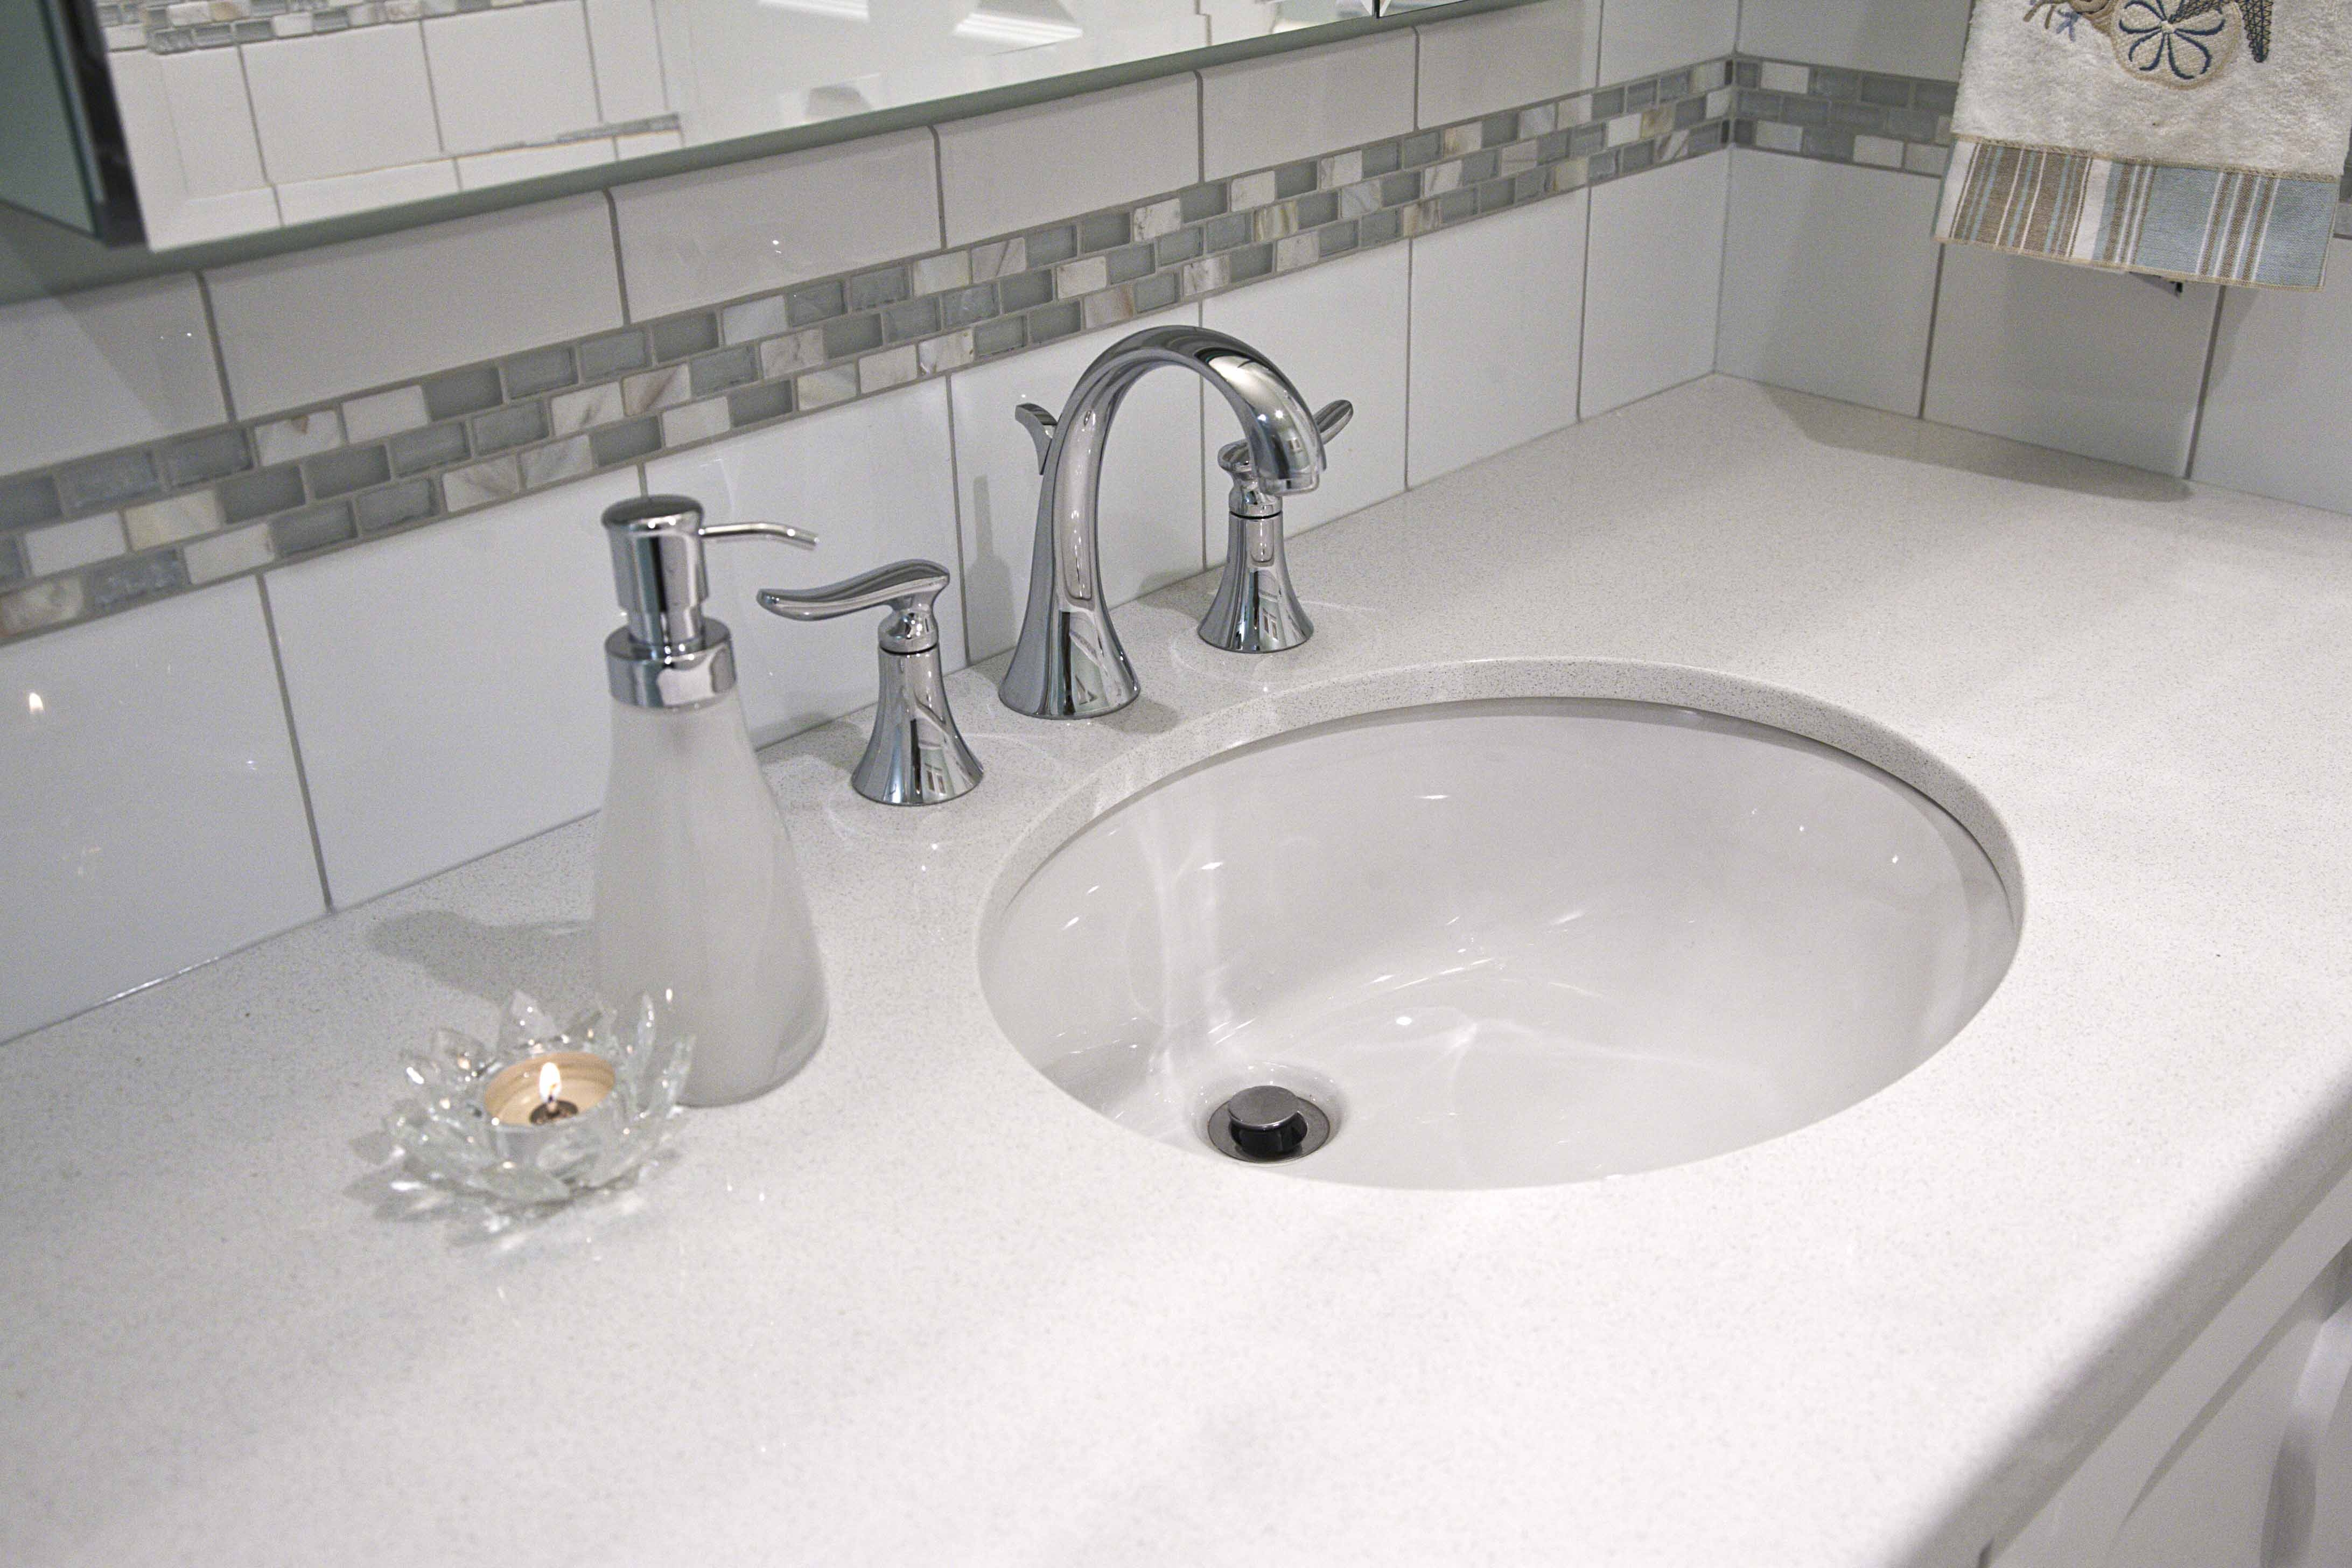 Ideas, are mirabelle faucets good are mirabelle faucets good are mirabelle sinks good best sink decoration 4368 x 2912  .